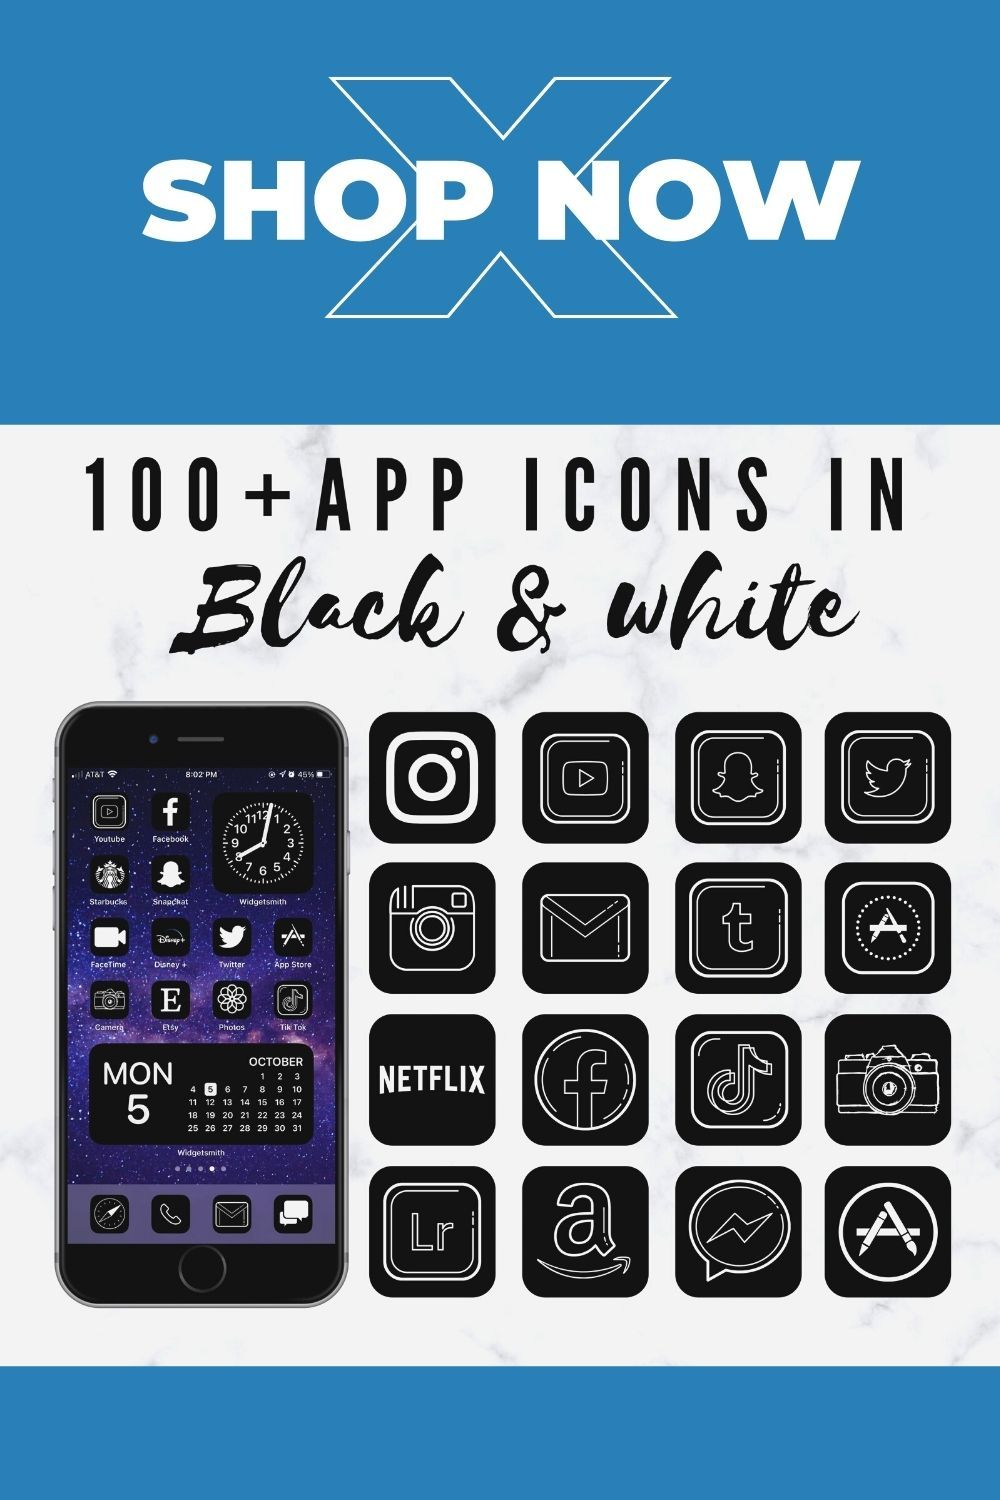 app icons black and white aesthetic, iOS 14 home screen ideas for iPhone.